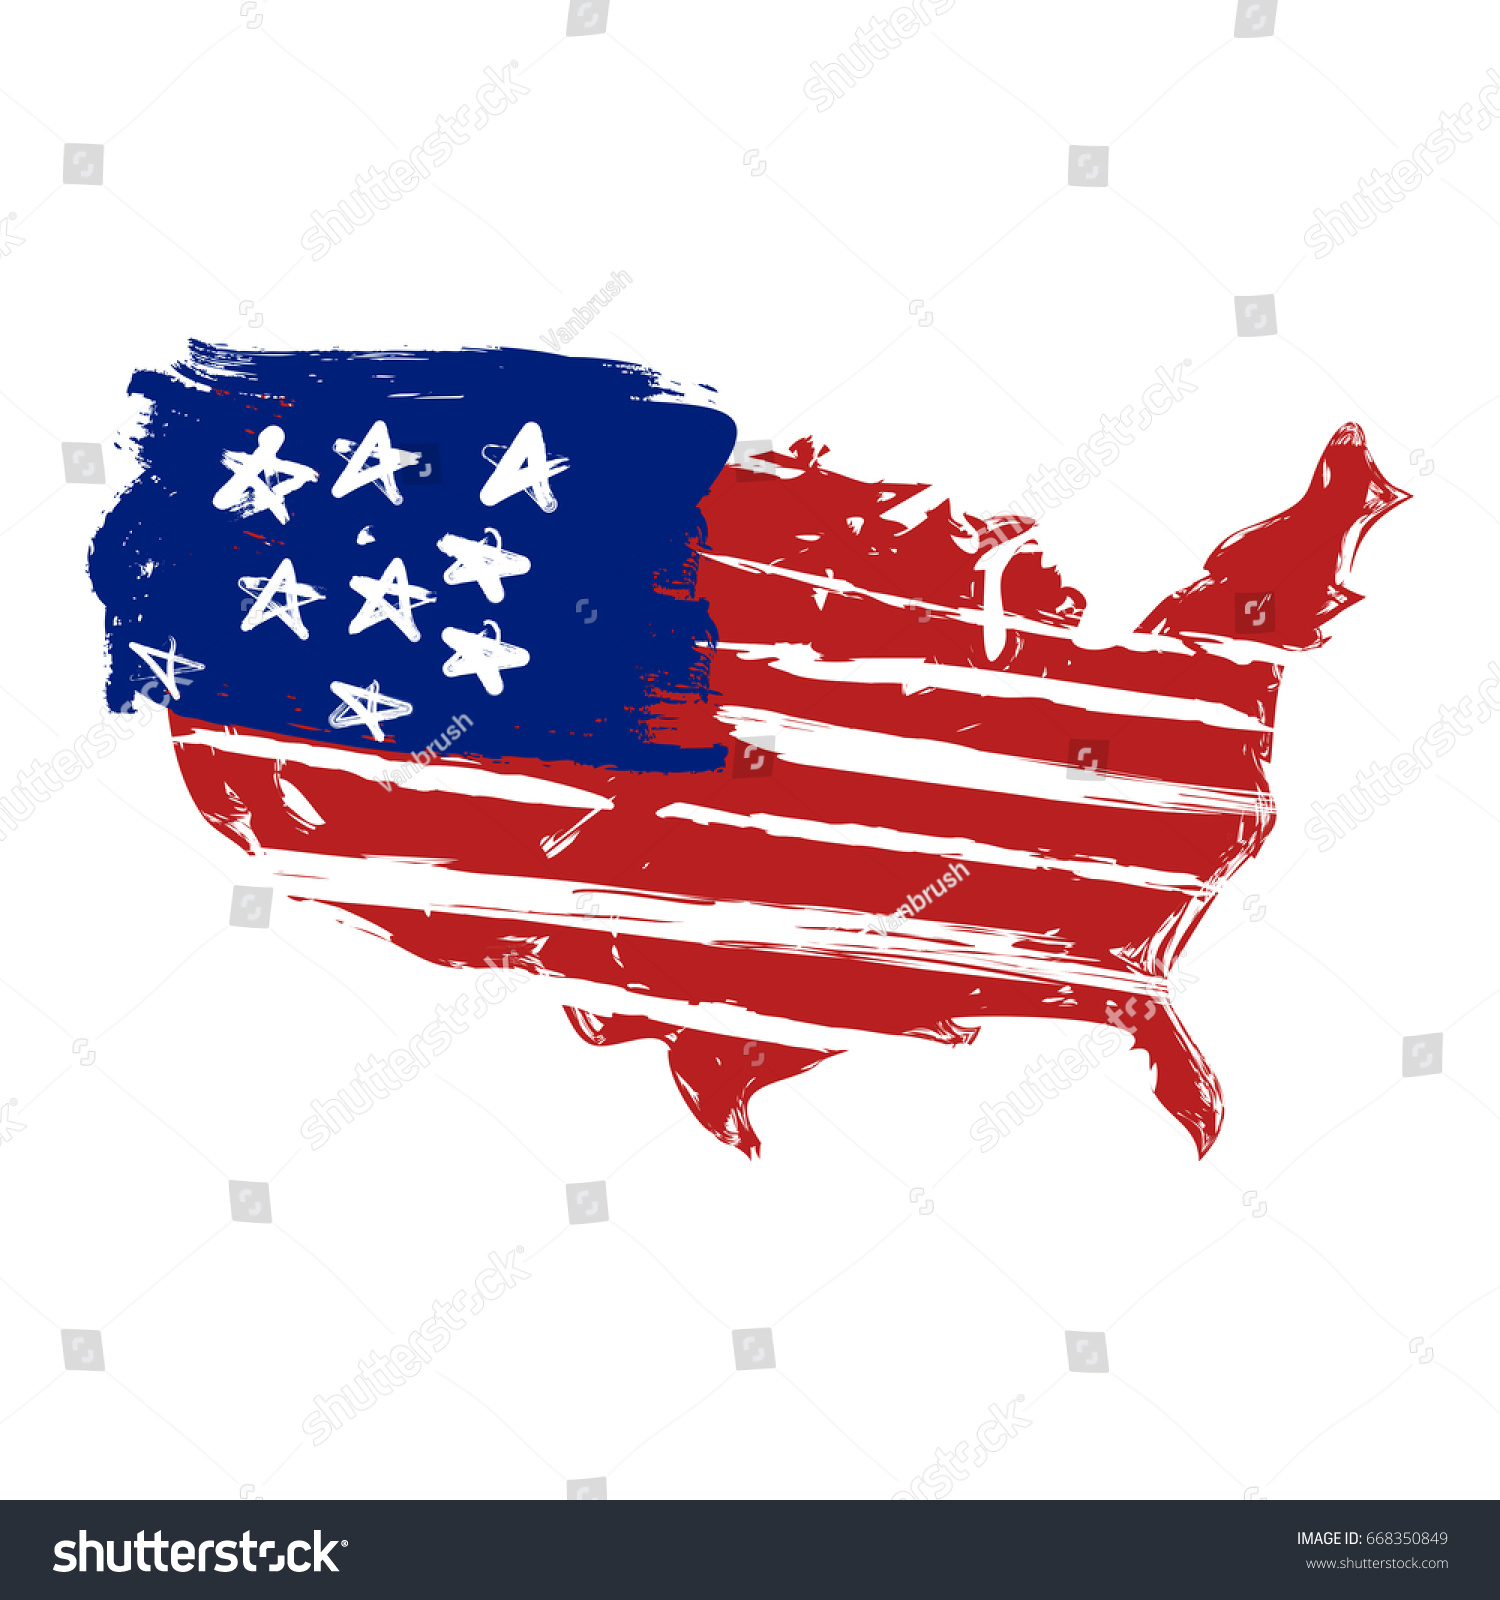 US Flag Map Wallpaper X United States America Map Flag - Us flag and map